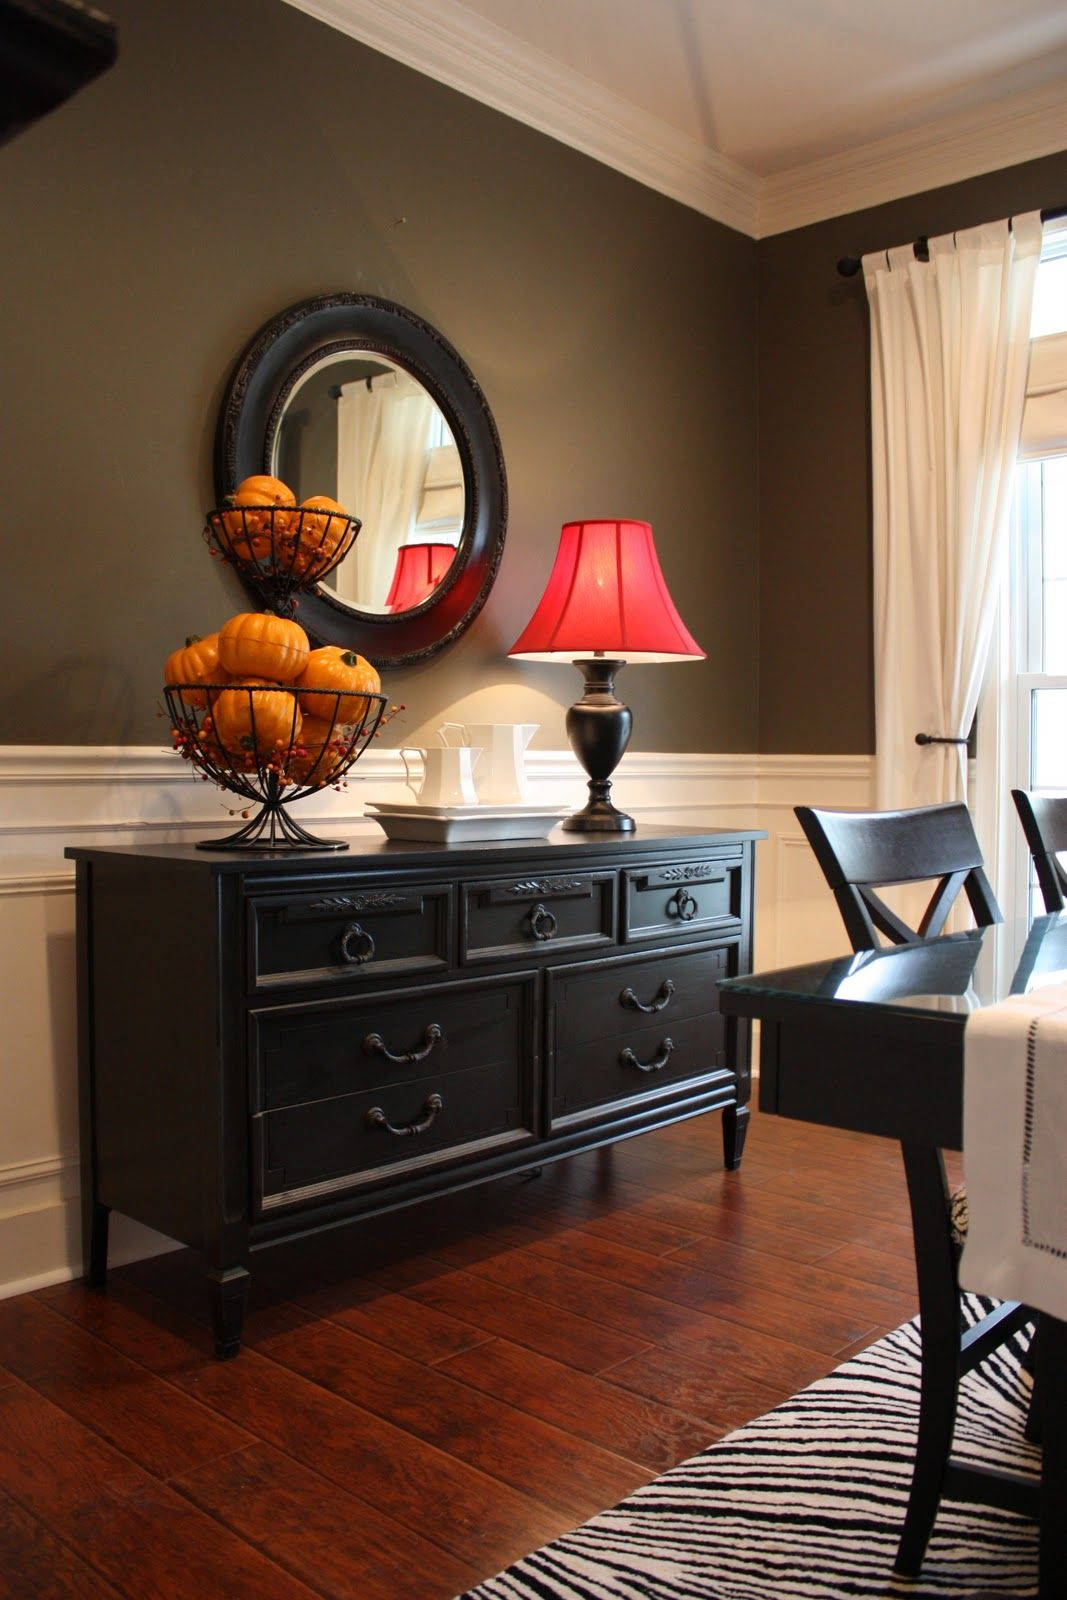 The Dresser Is Absolutely Gorgeous Piece Of Furniture.